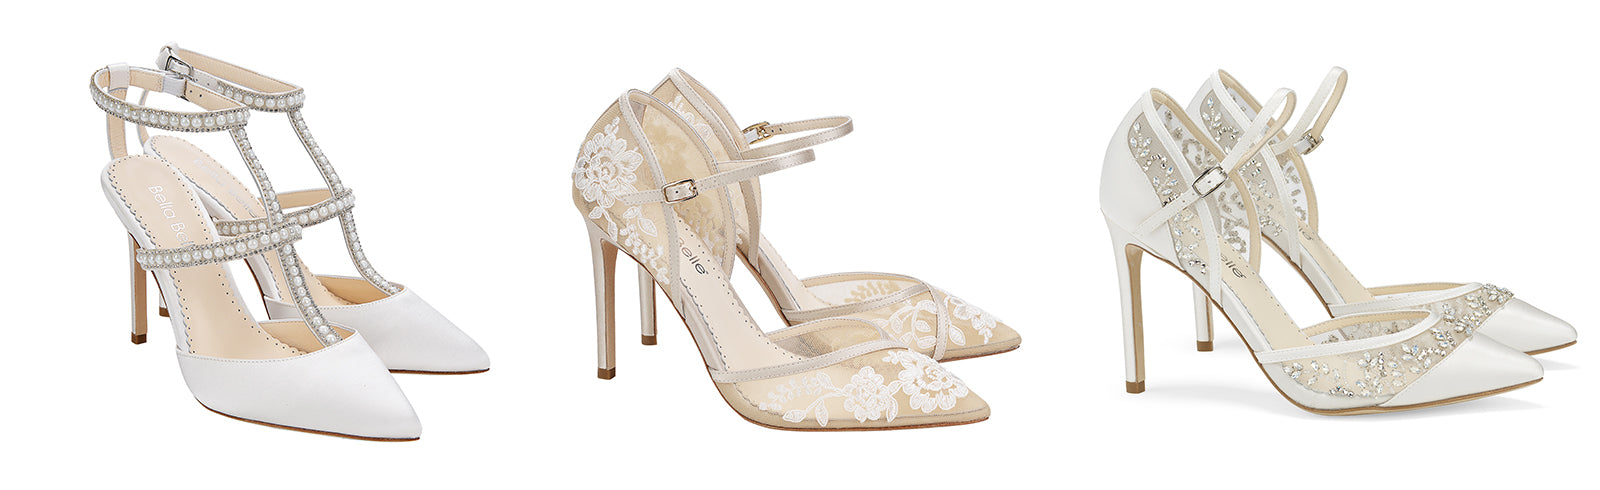 bella belle designer wedding shoes galia lahav wedding dress